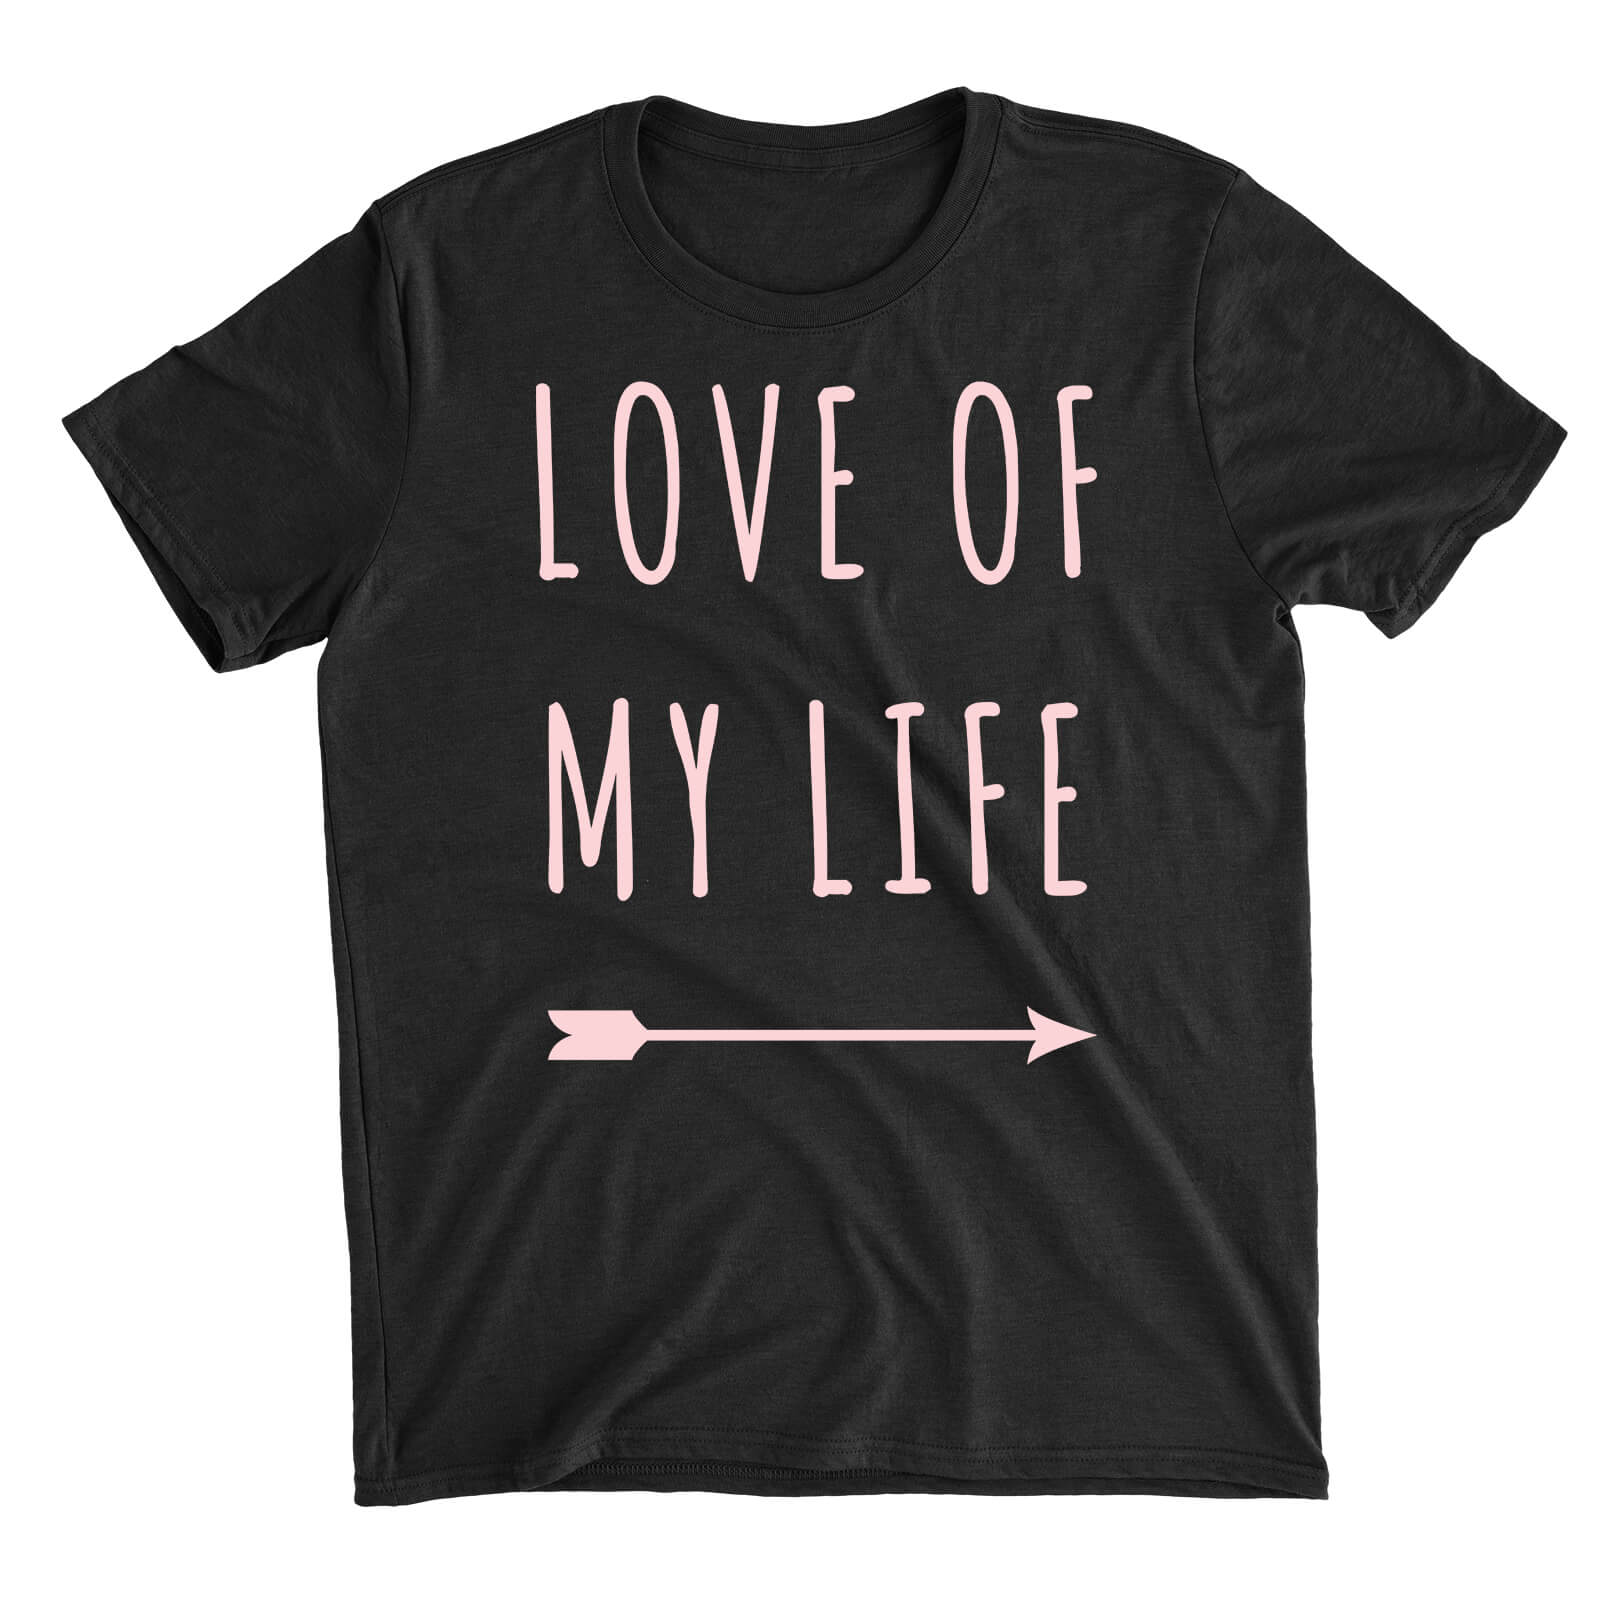 Love Of My Life Black T-Shirt